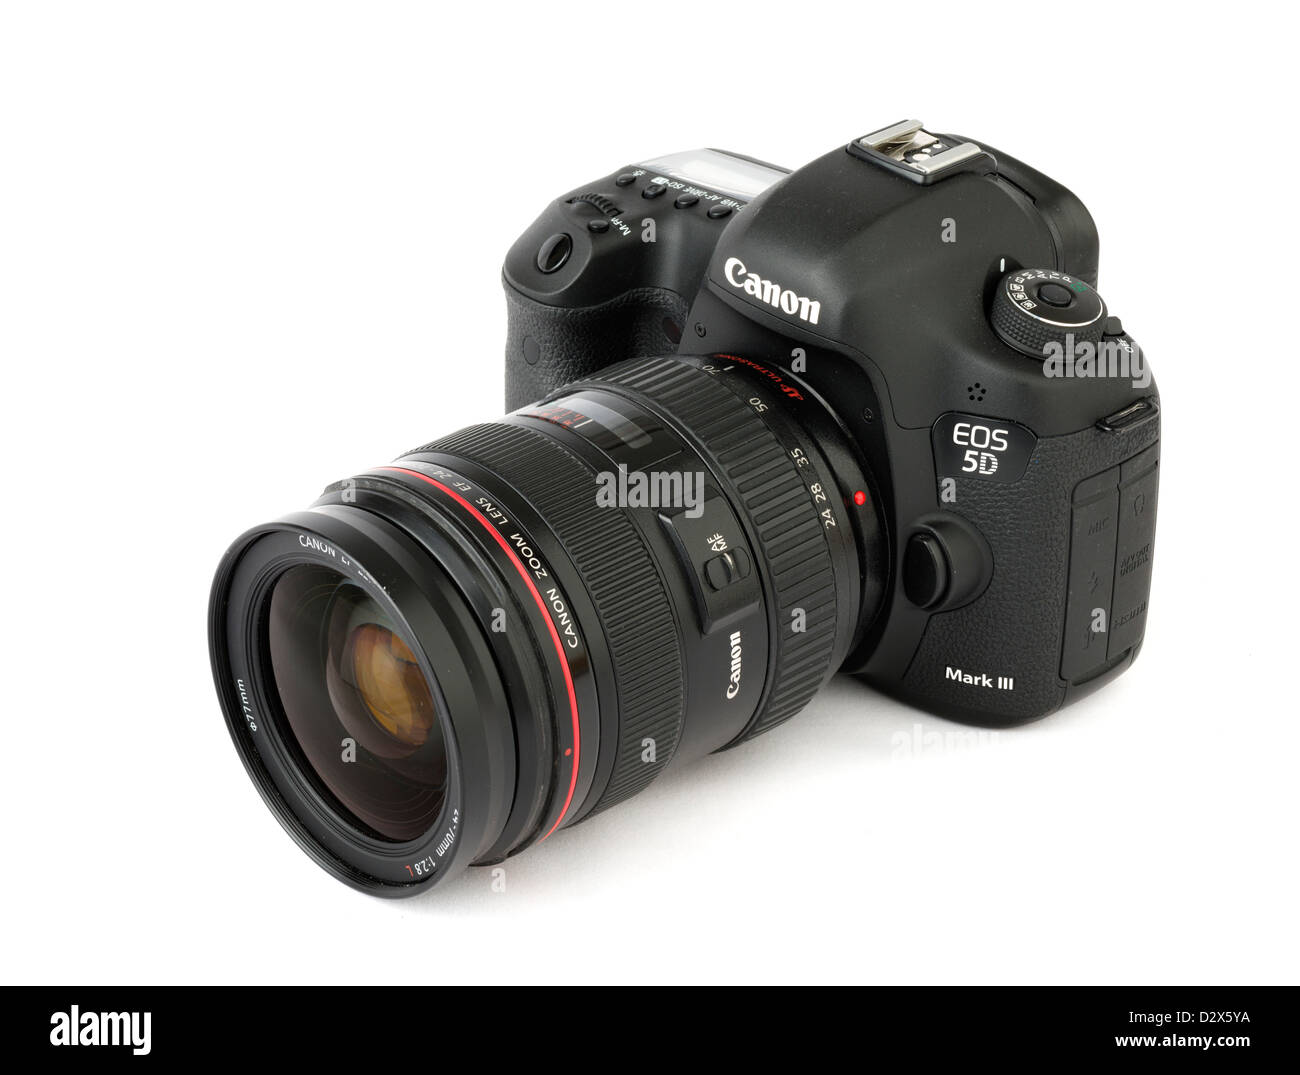 A Canon EOS 5D Mark III digital SLR camera with Canon EF 24-70mm f/2.8L zoom lens - Stock Image